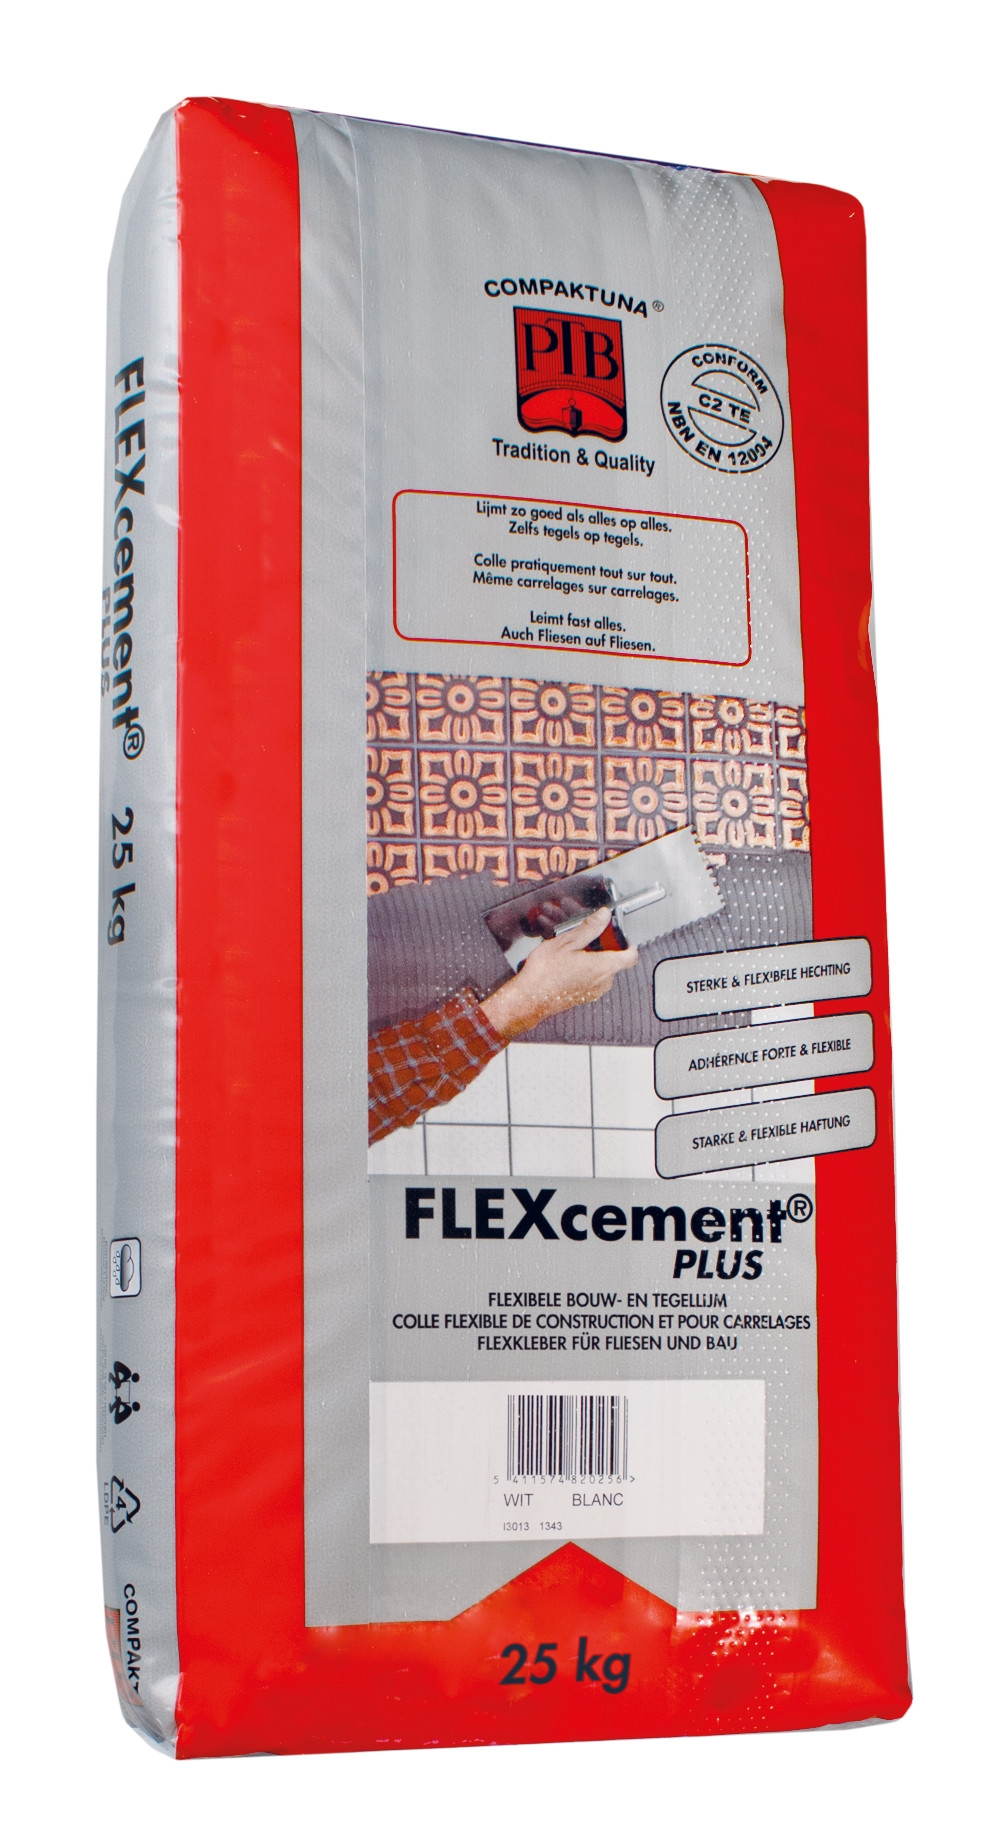 Flexcement PLUS - 25kg - Wit